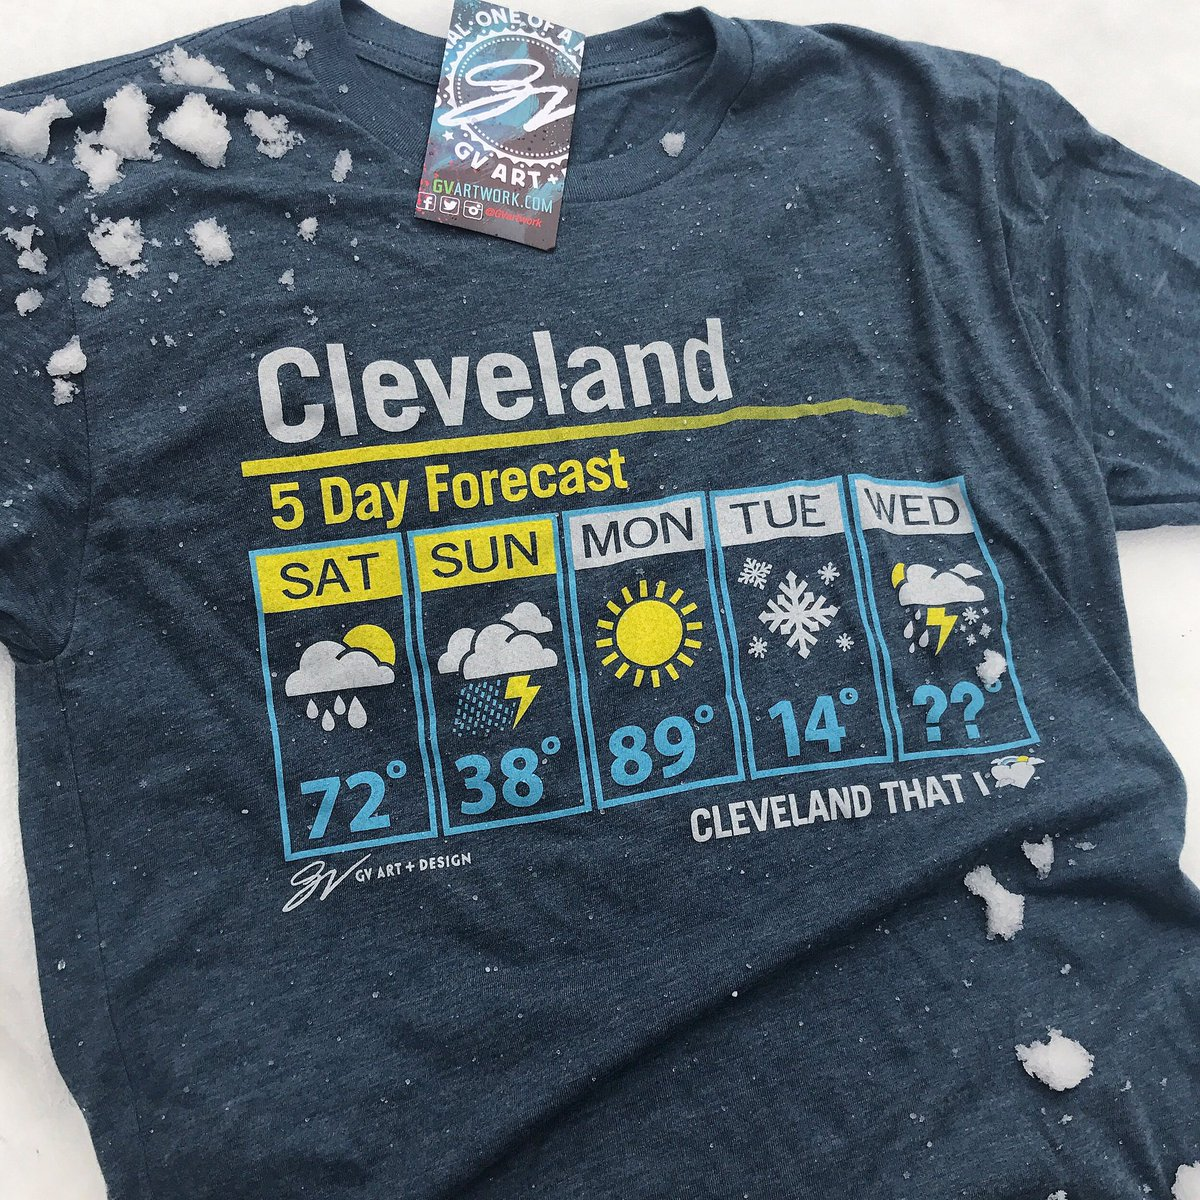 5ab14100 A 30 degree drop in temps from yesterday to today deserves 30% off on our  Cleveland 5 Day Forecast shirt! Use code